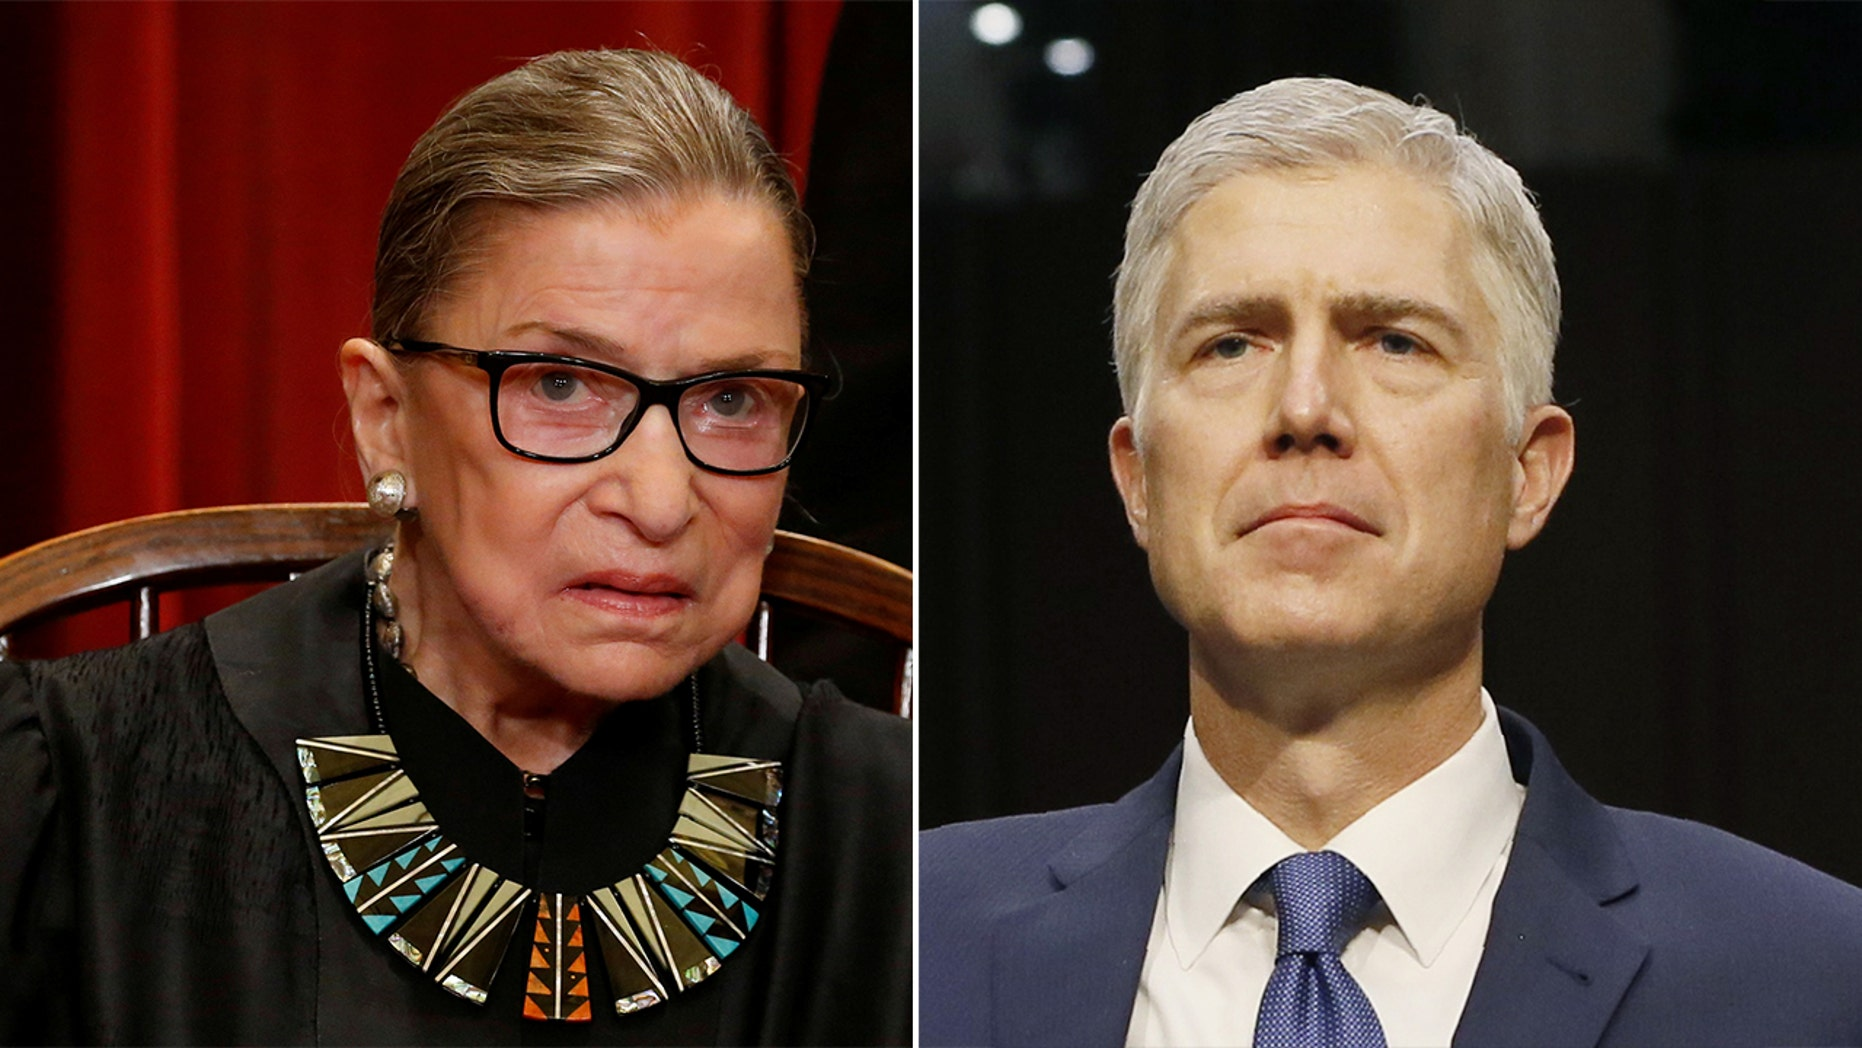 Supreme Court Justices Ruth Bader Ginsburg (left) and Neil Gorsuch